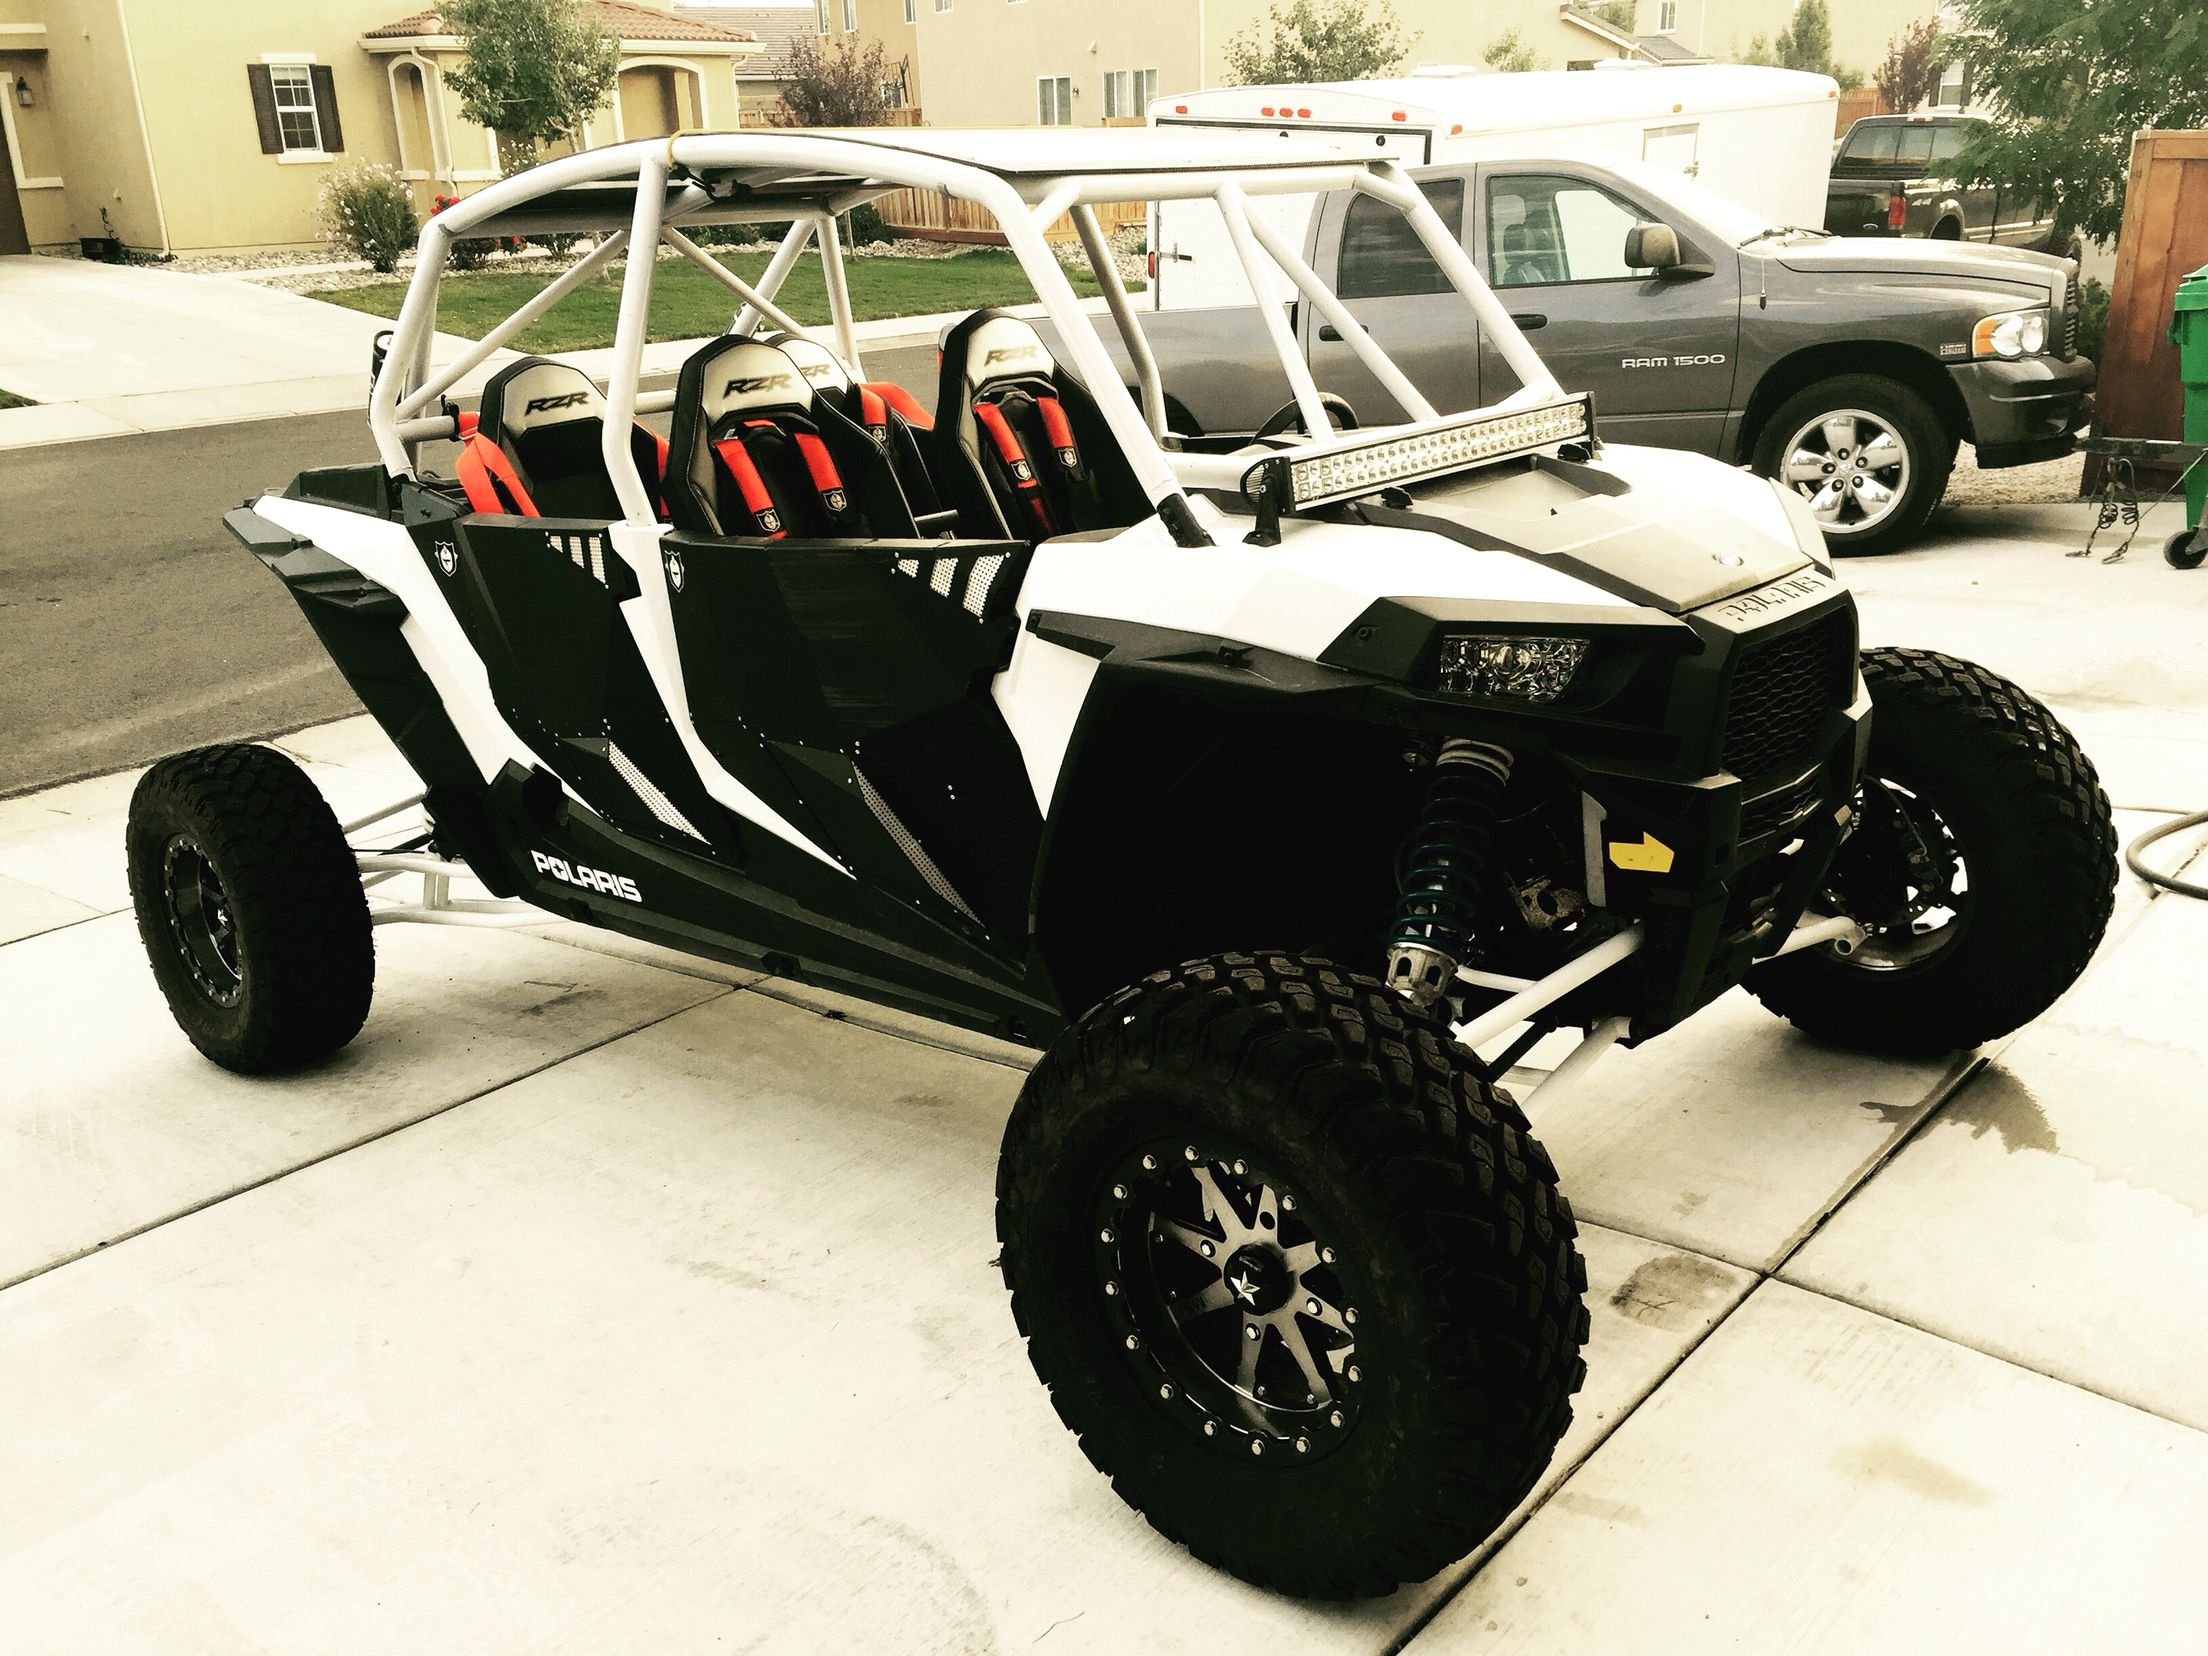 My RZR XP1K with the new NXS DESIGNS long travel kit | RZR